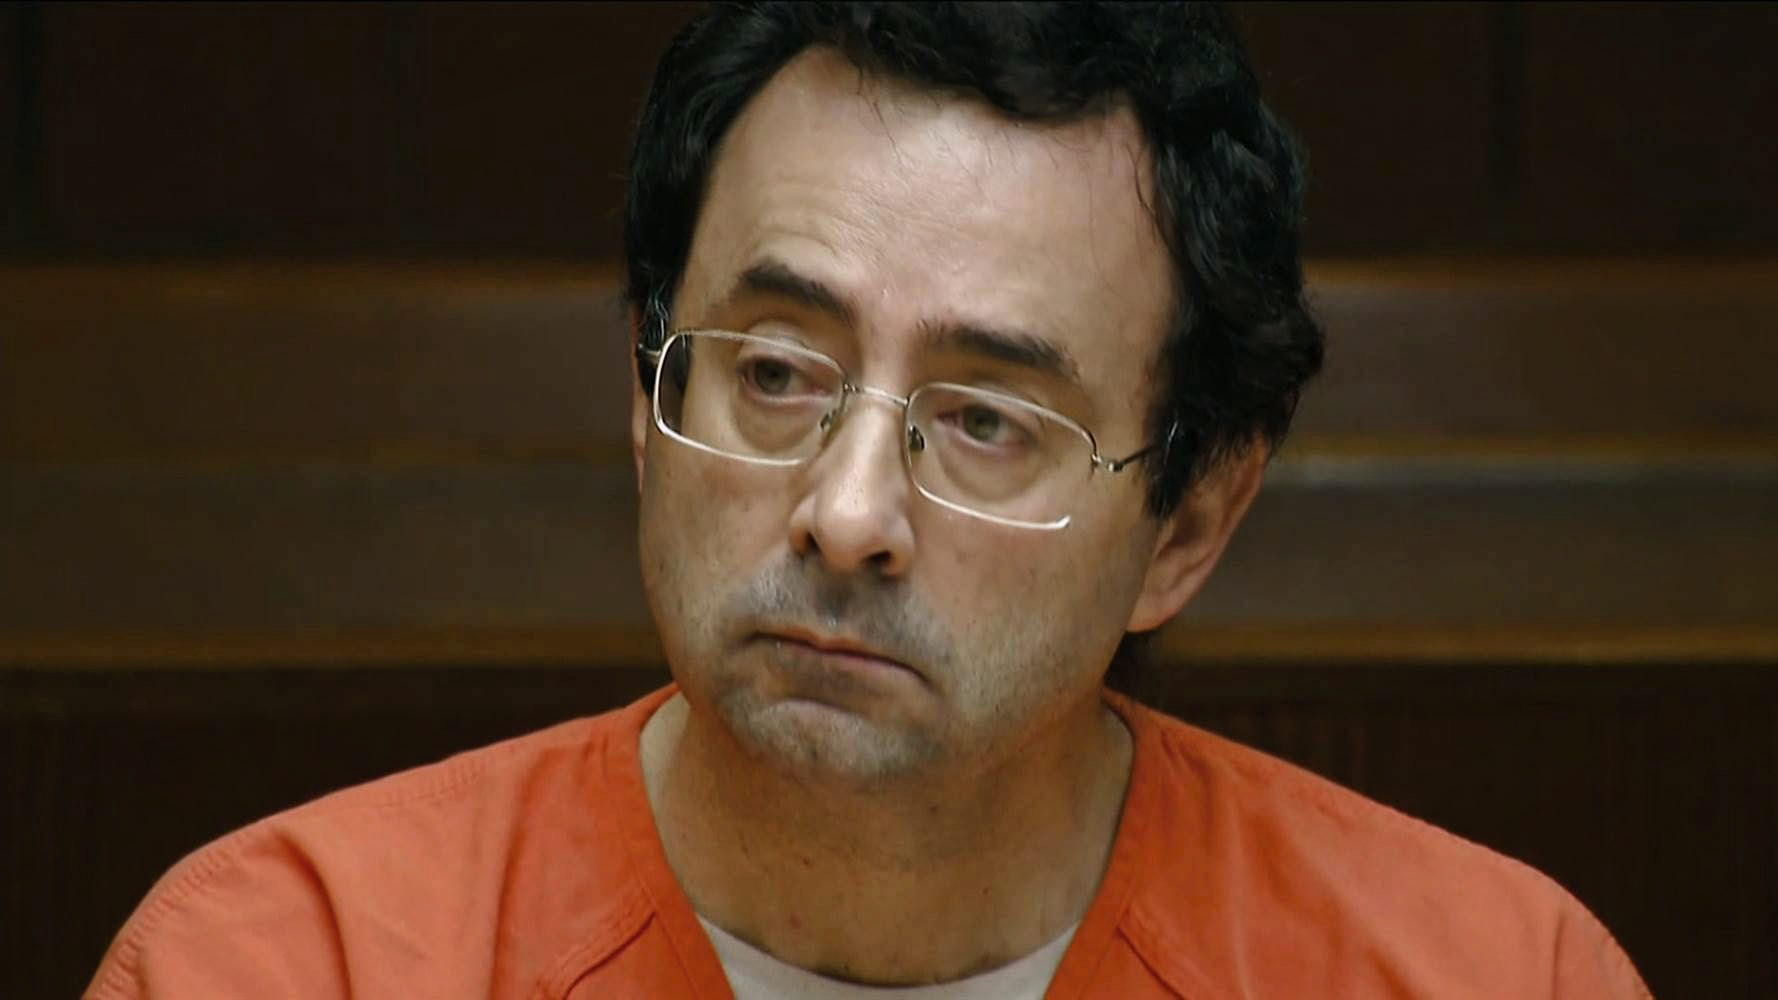 Life Mimics Porn: USA Gymnastics Team Doctor On Trial For Sexually Abusing 140 Gymnasts